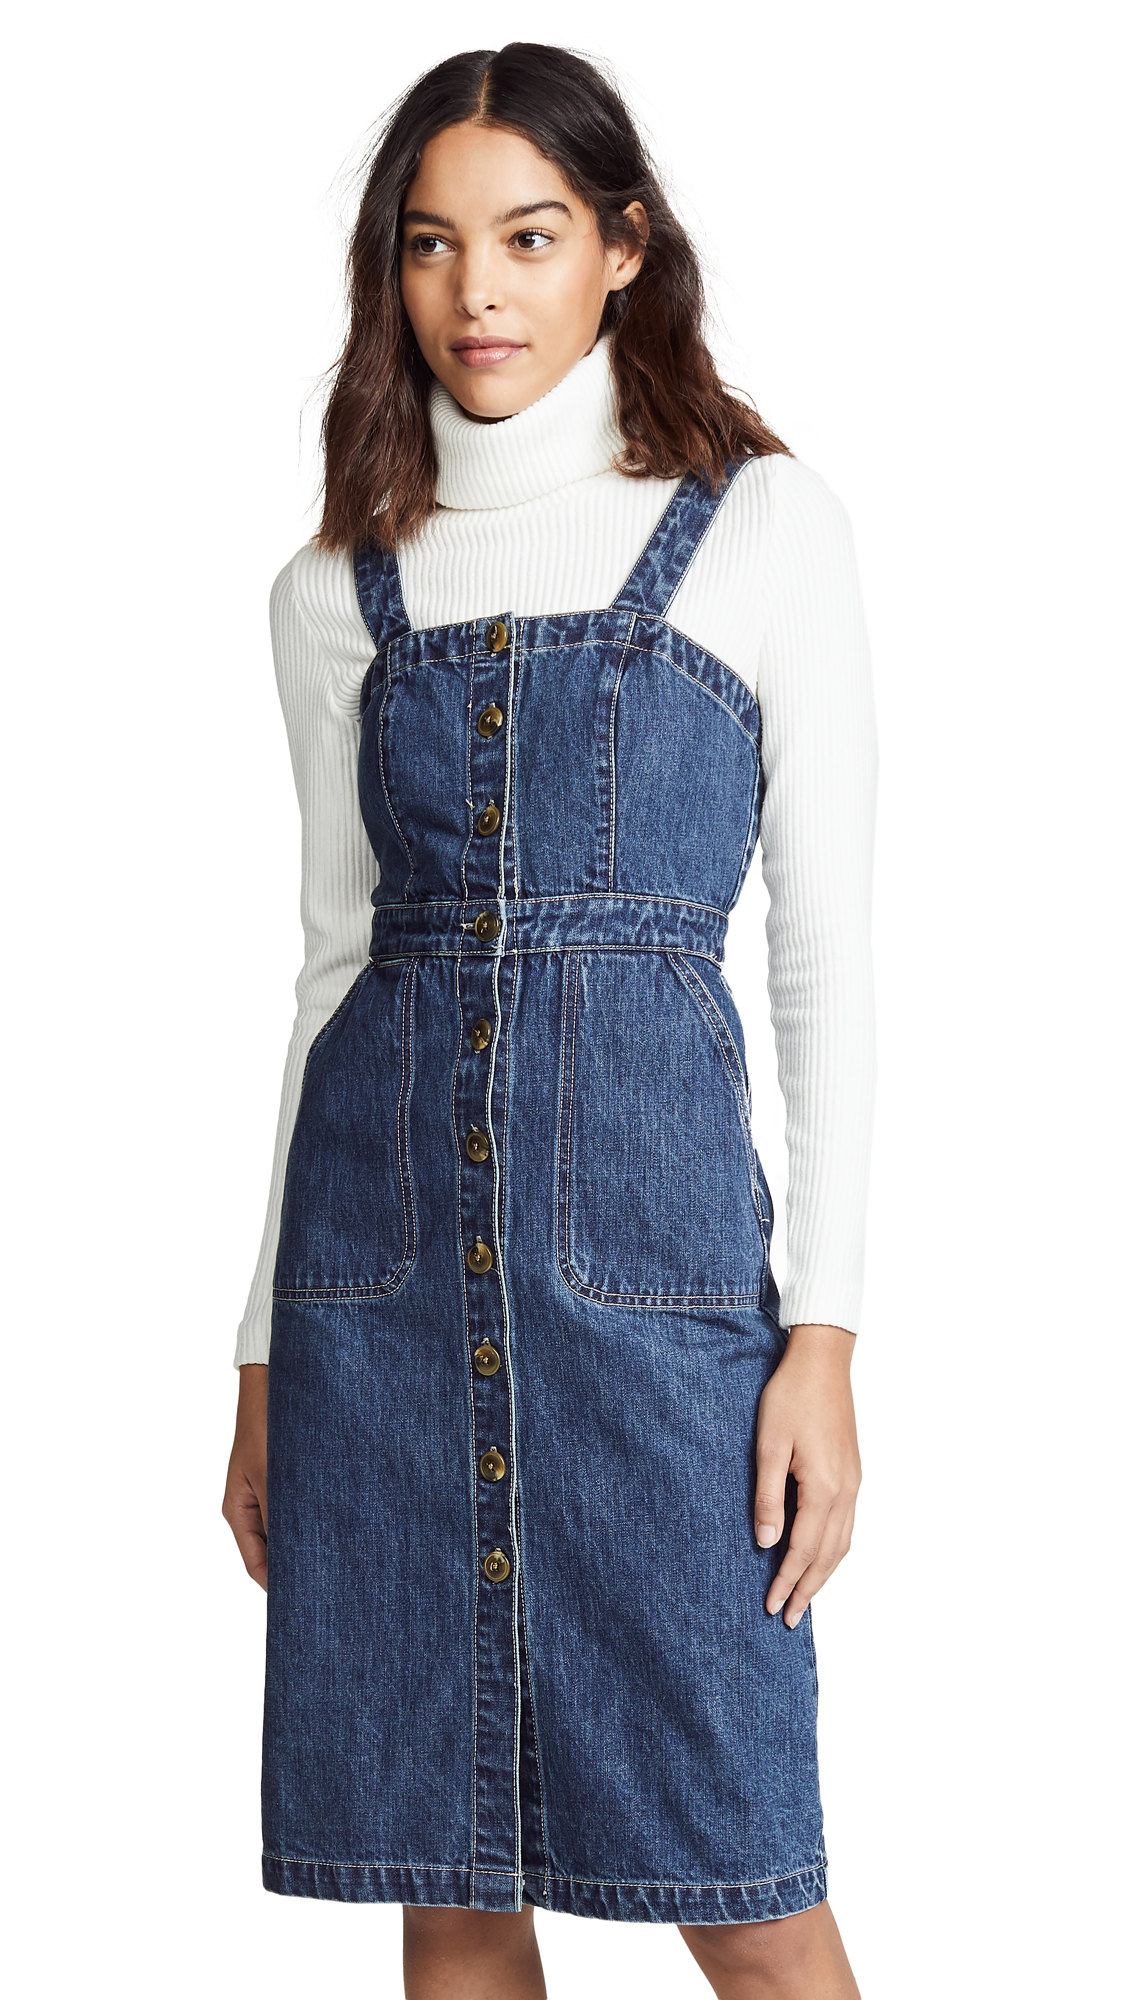 Rachel Antonoff Barbie Apron Dress - Indigo Wash